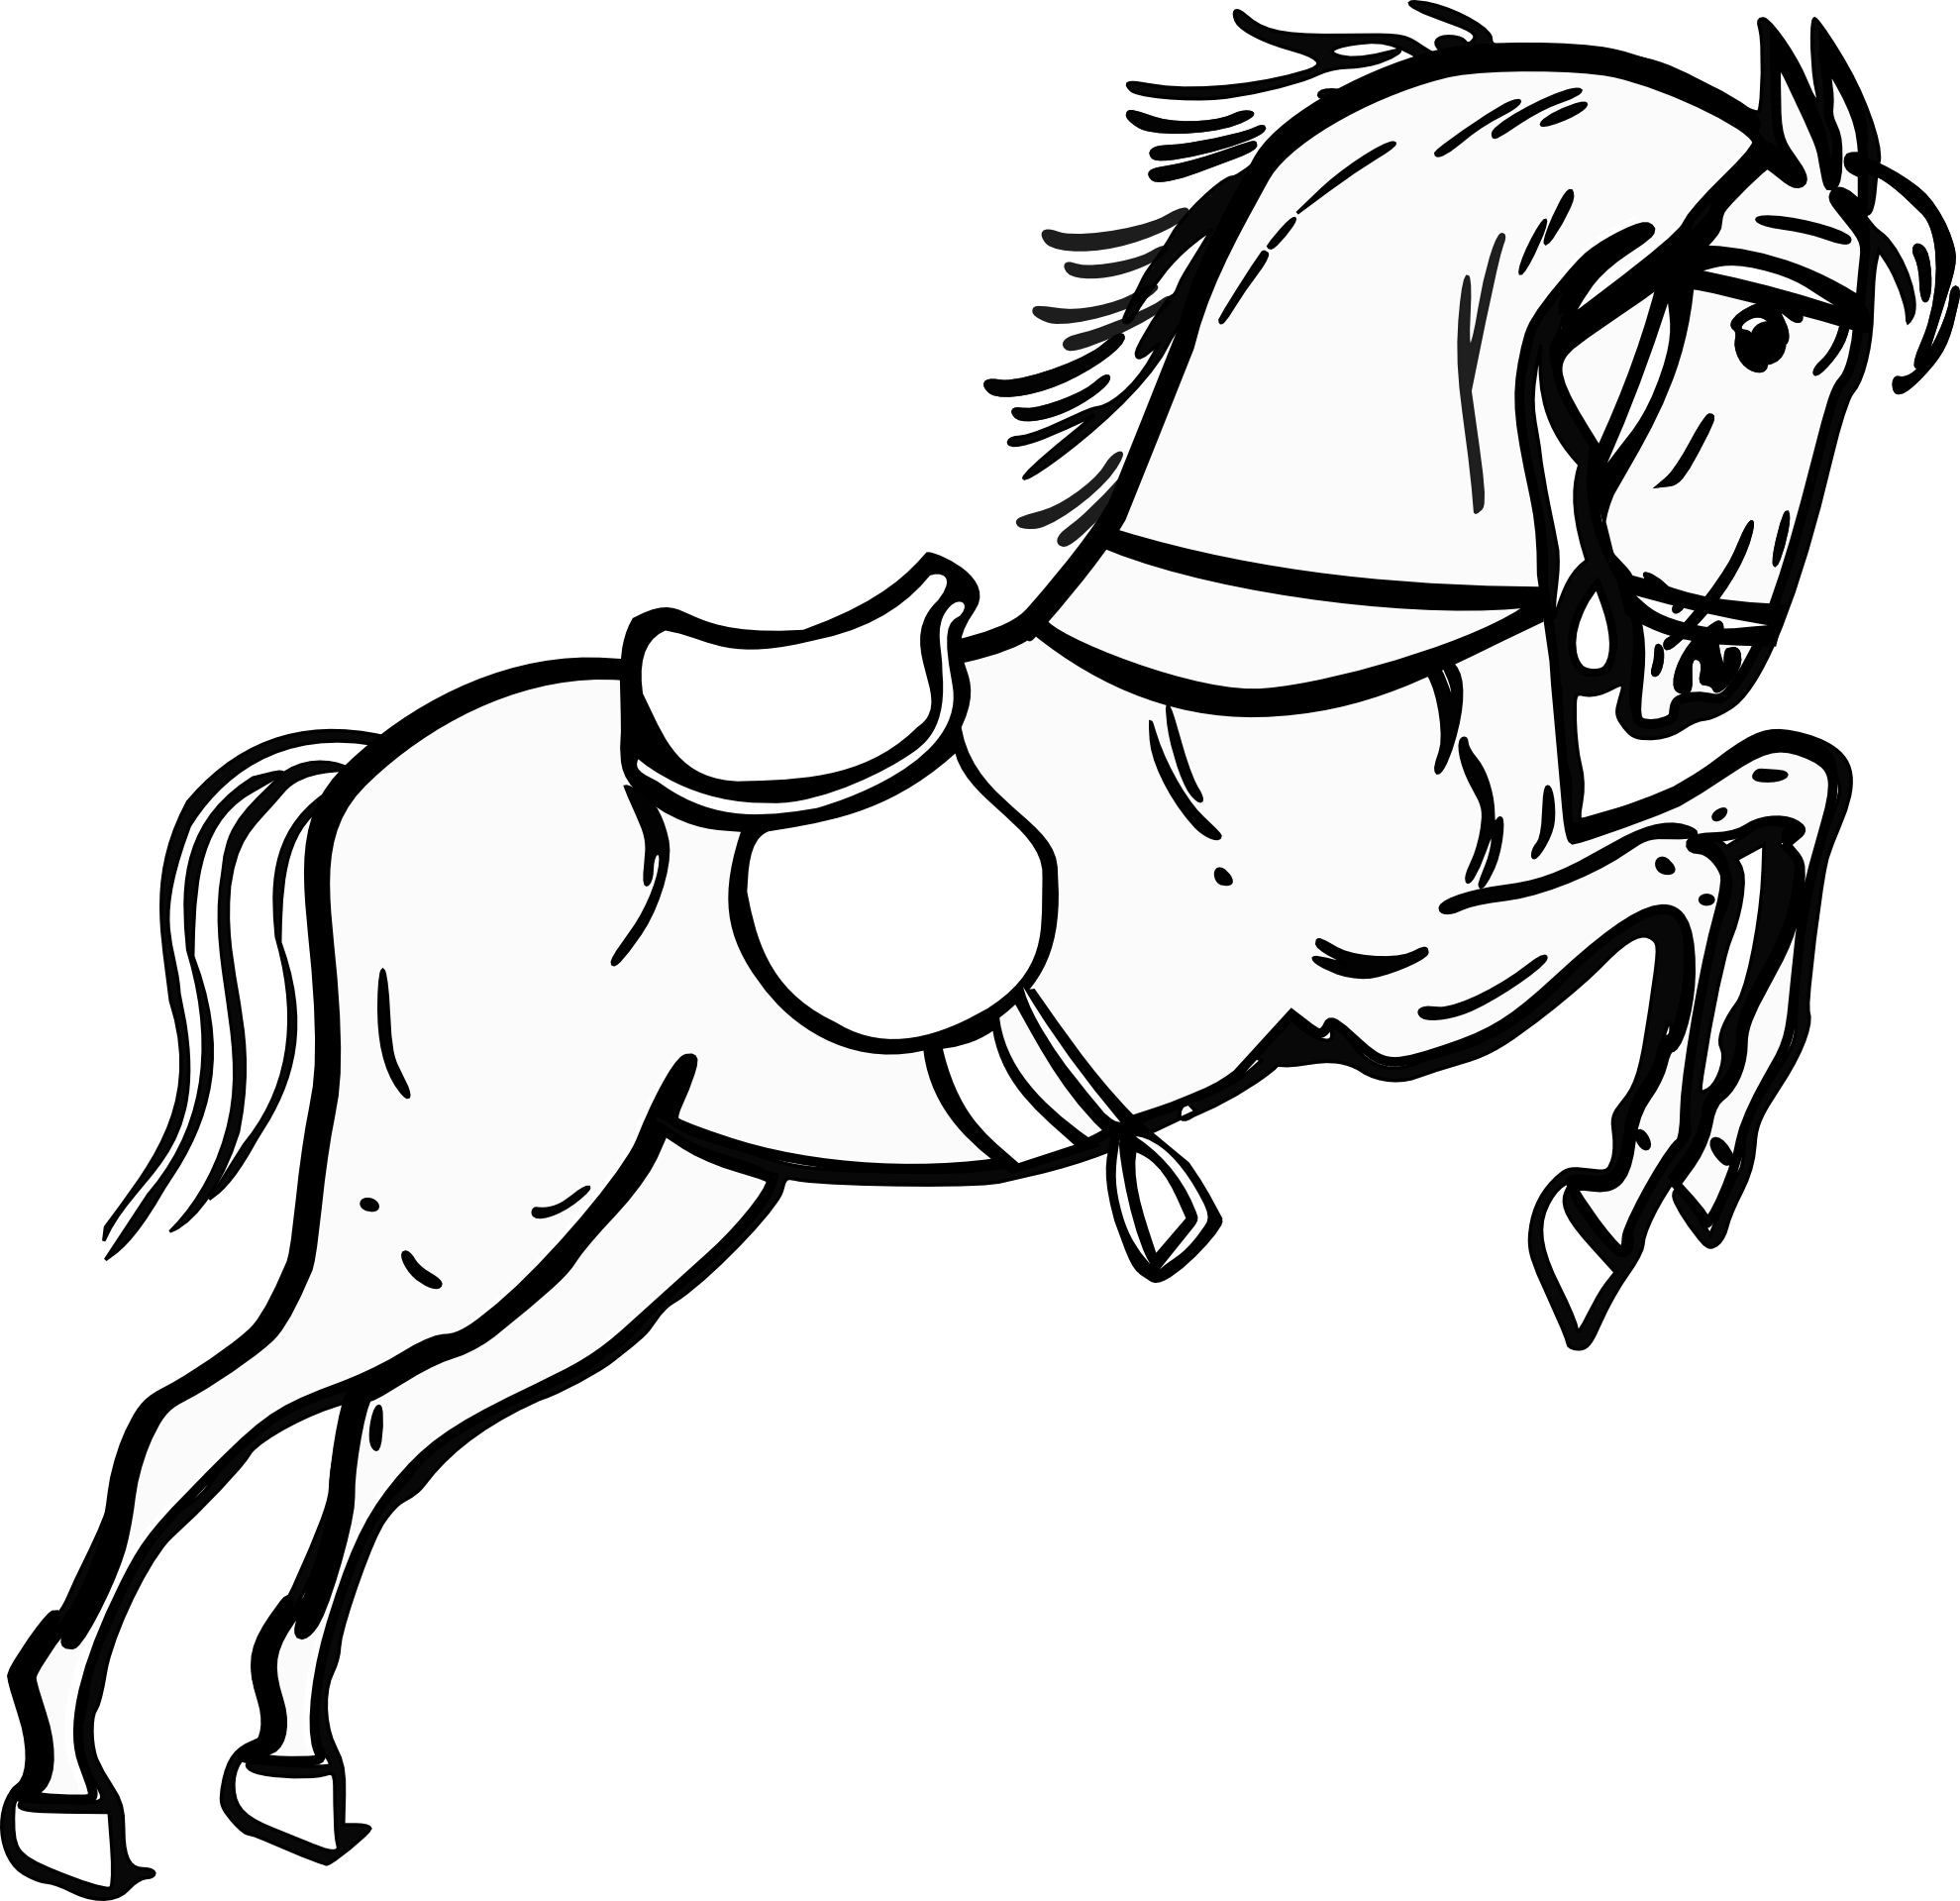 Black and white clipart horse vector free Horse Clip Art Black And White | Clipart Panda - Free Clipart Images vector free